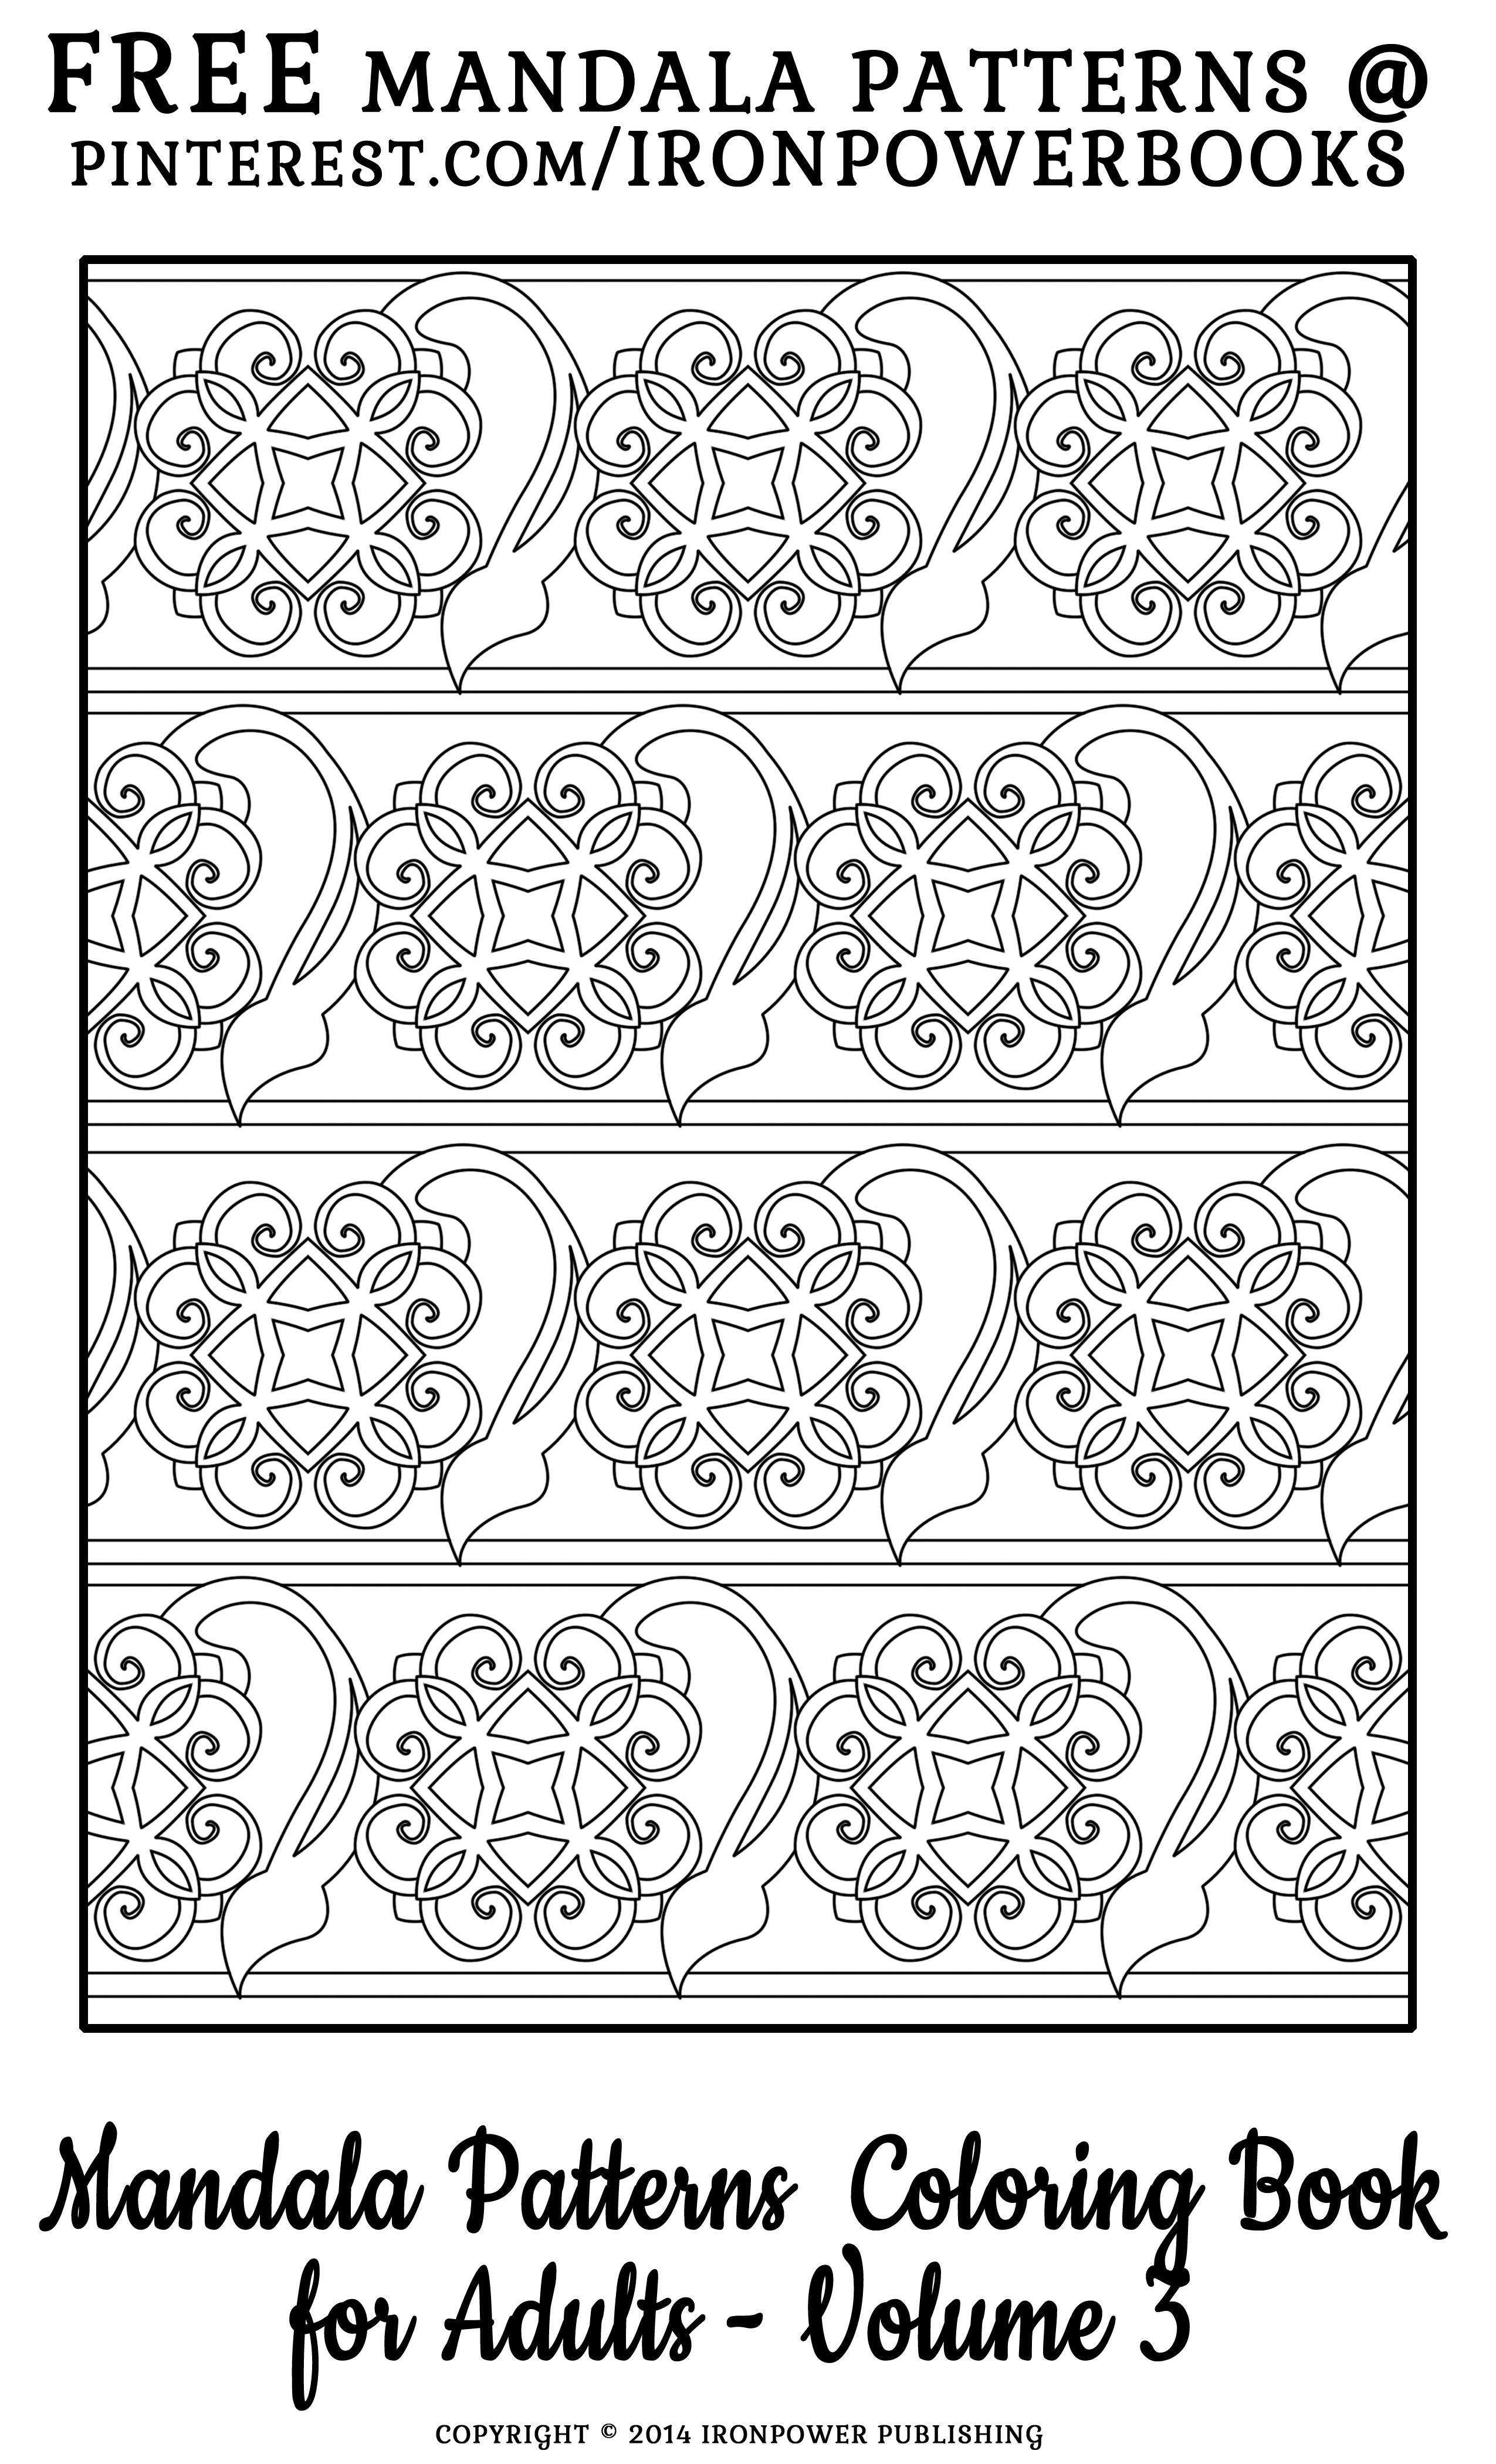 FREE Printable Pattern Coloring Page that can be use for Quilt ...